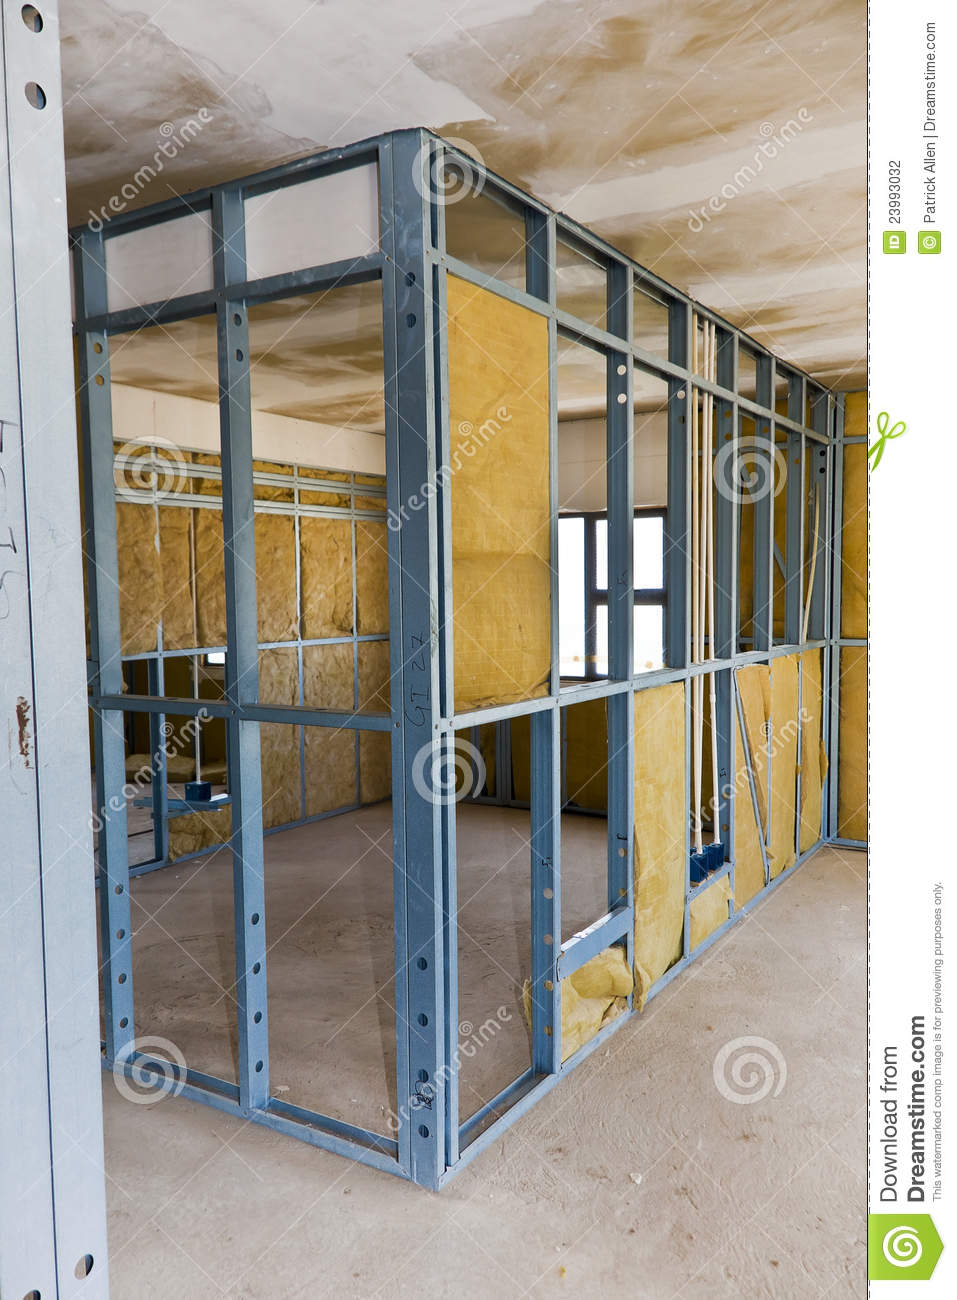 Construction Site Drywall Stock Photography Image